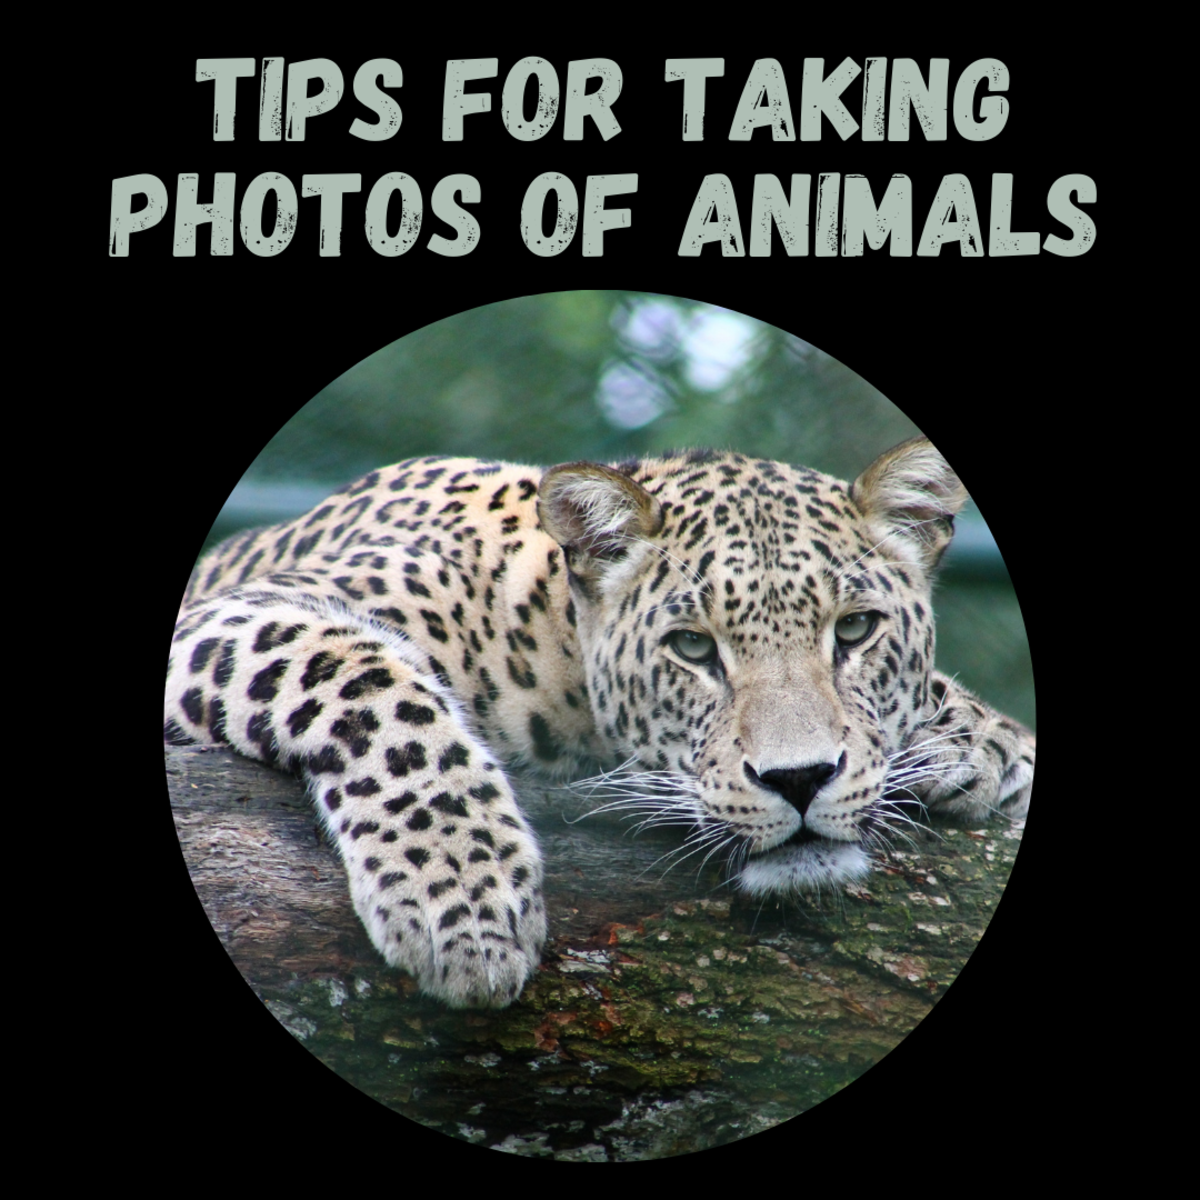 Learn how to take great wildlife photos with these five useful tips!